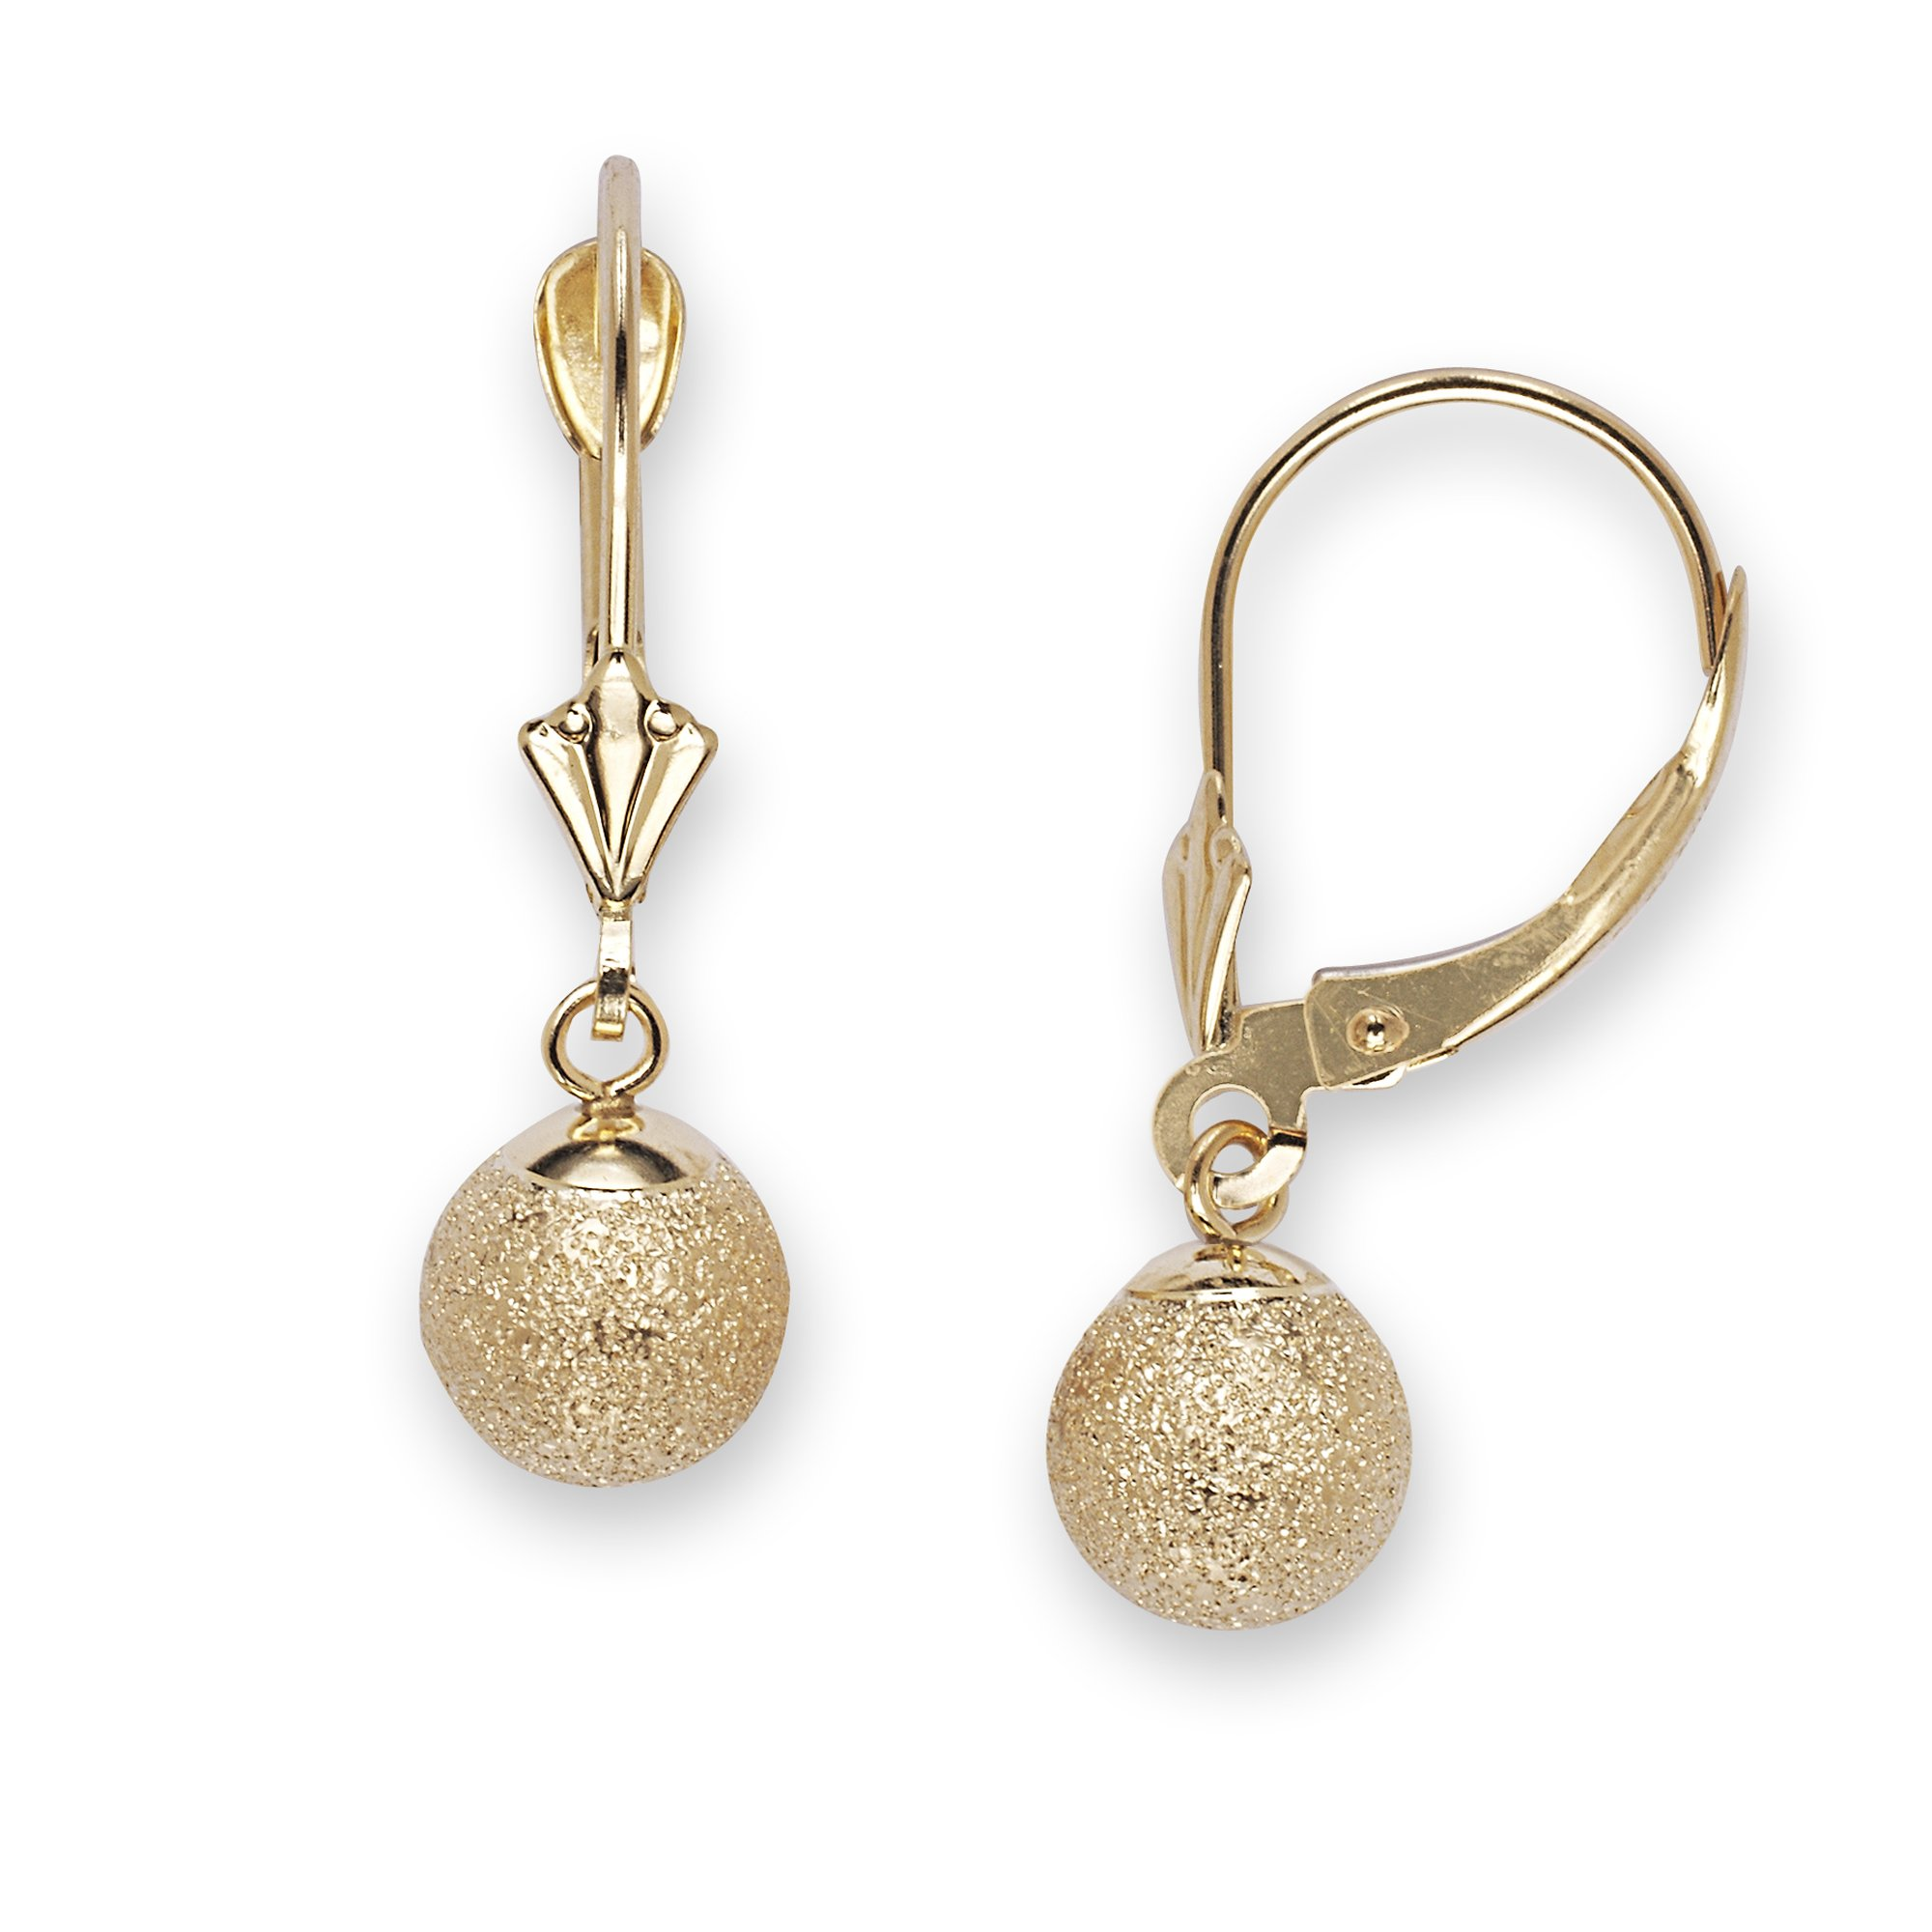 14k Yellow Gold Medium Fancy Ball Drop Leverback Earrings - Measures 24x7mm